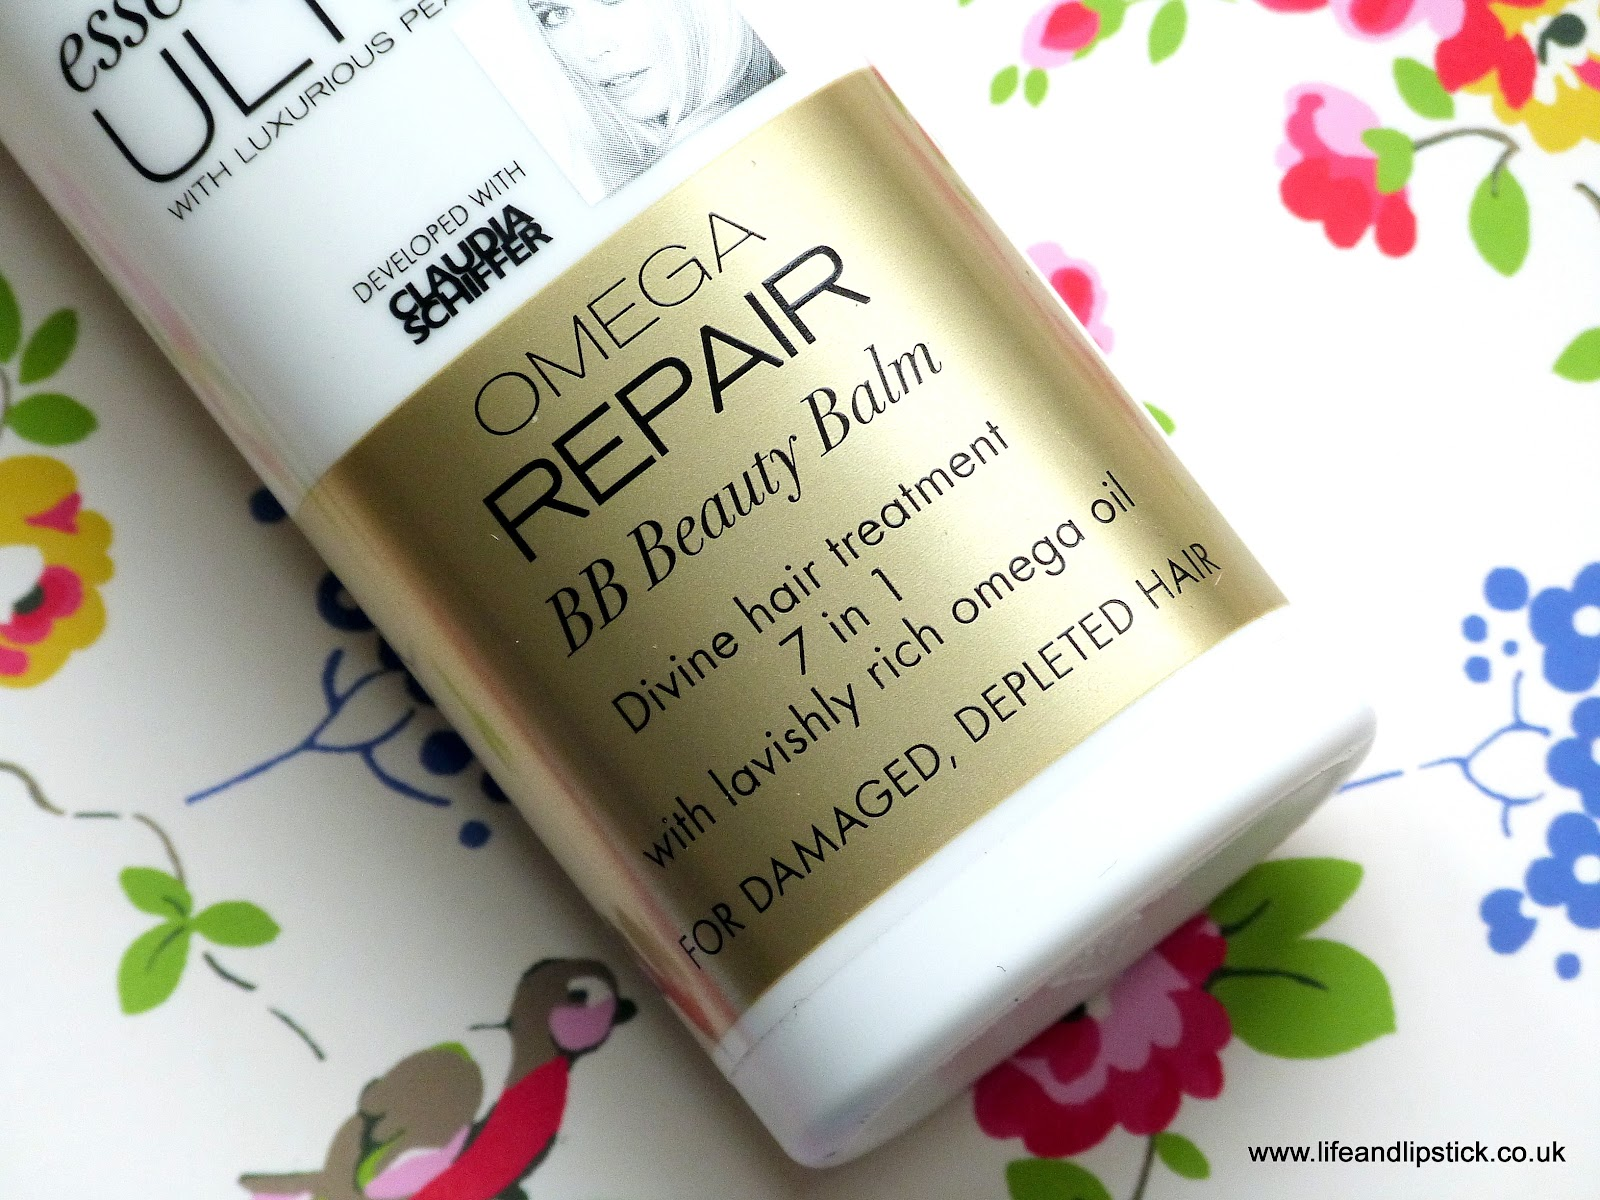 Schwarzkopf  Essence Ultime Omega Repair BB Beauty Balm